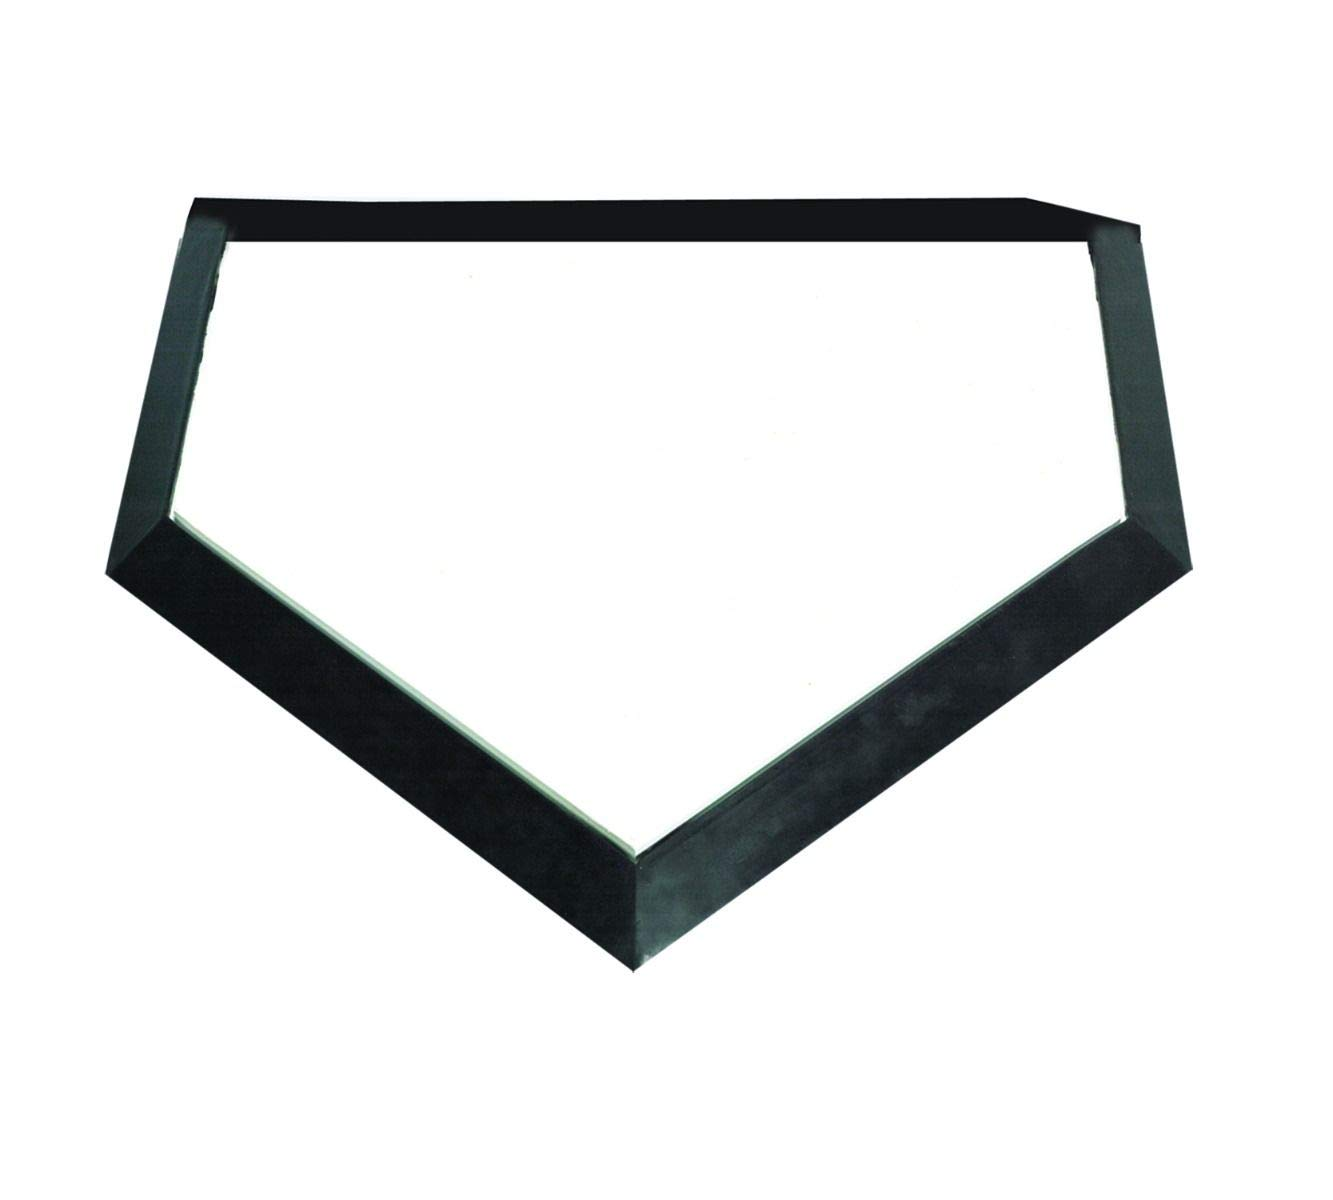 Schutt Hollywood Home Plate by Schutt